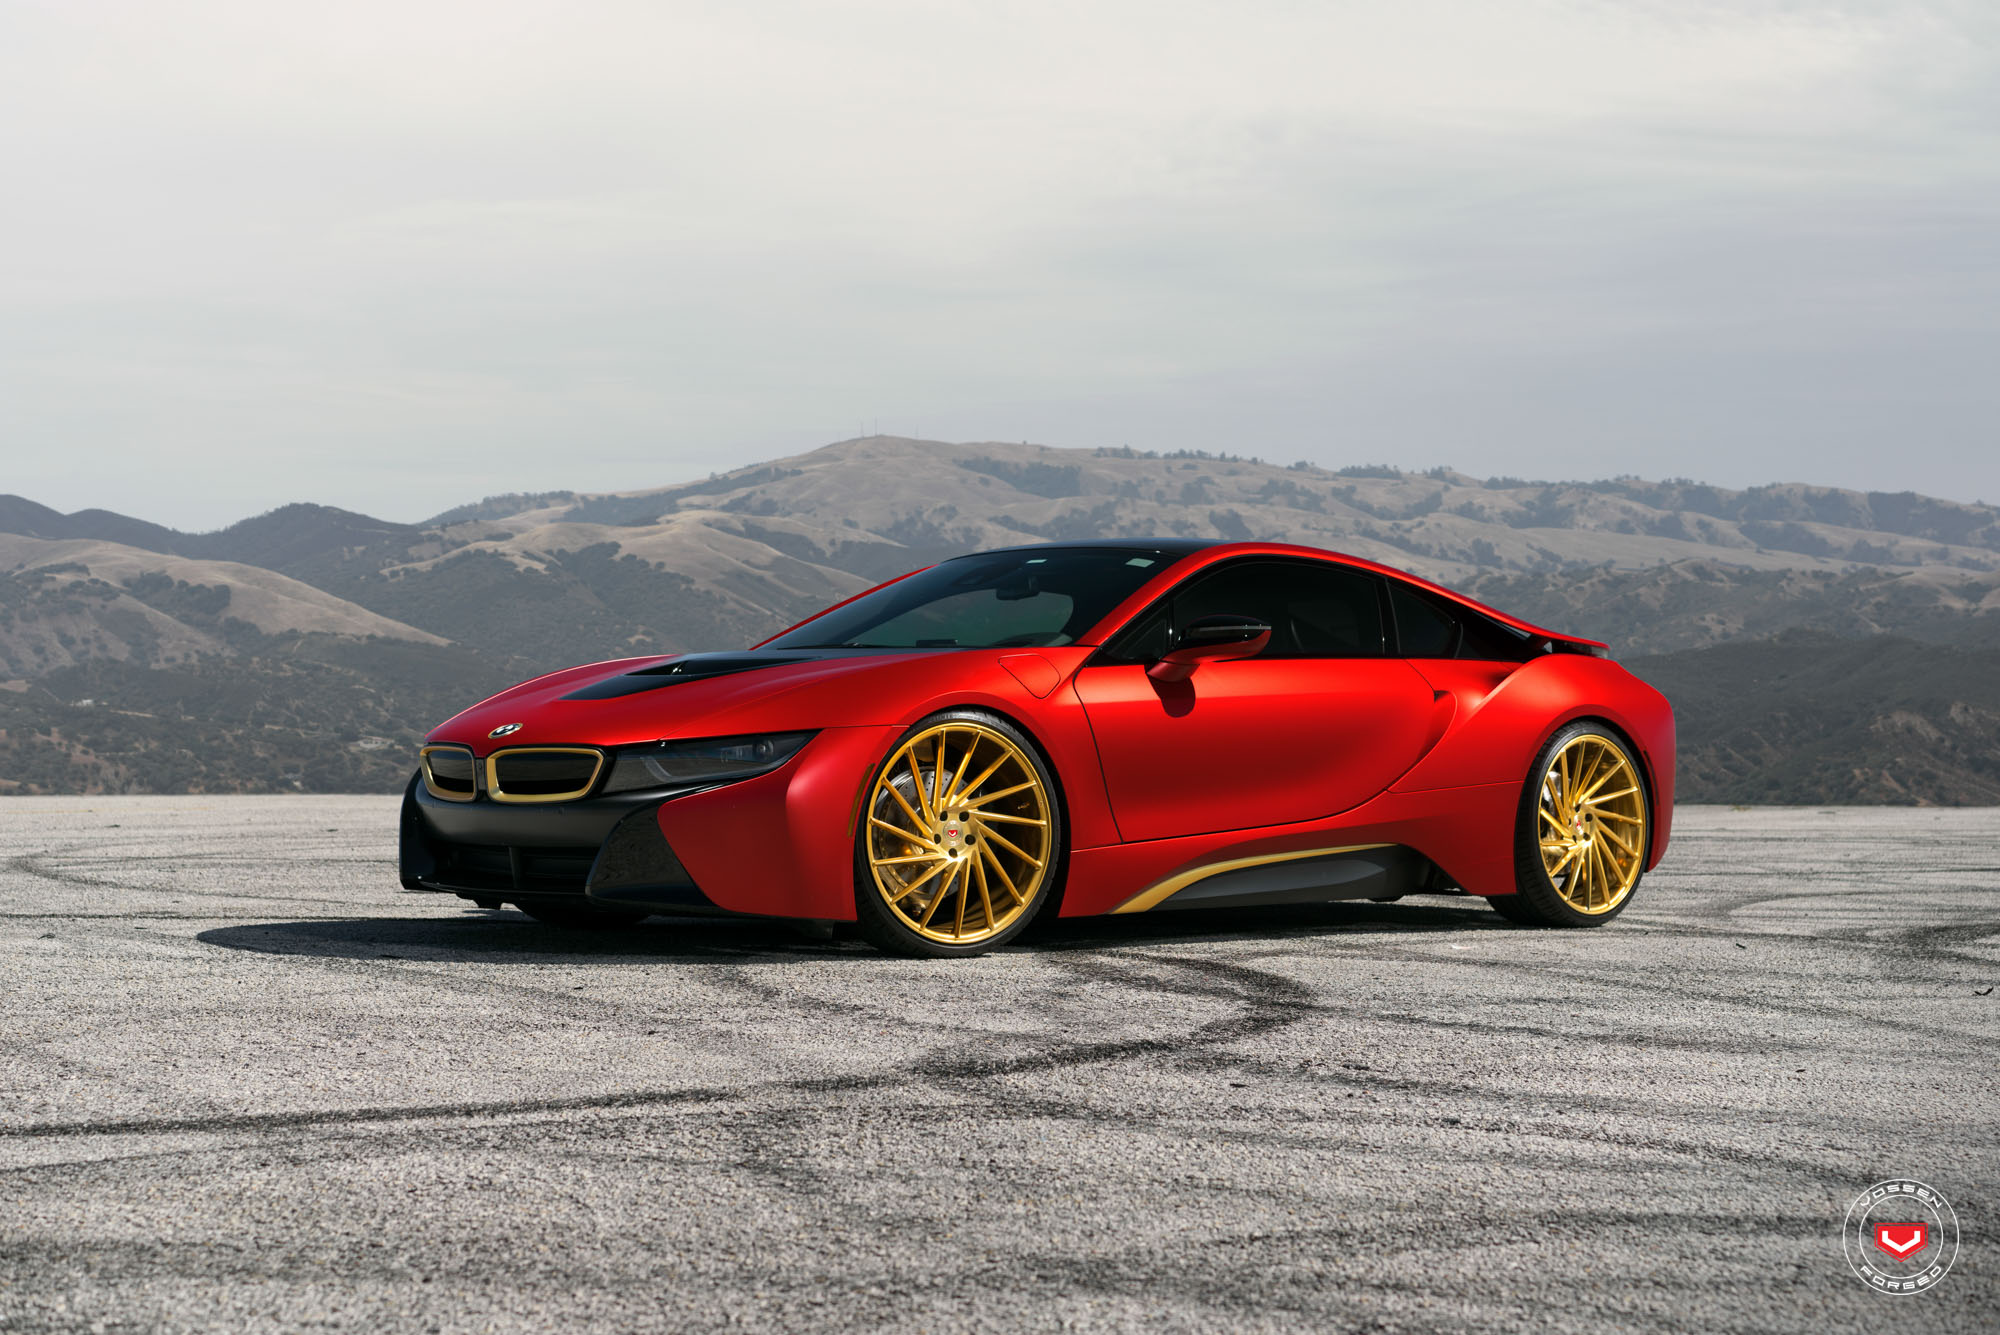 Austin Mahone S Iron Man Bmw I8 Makes More Sense Than The